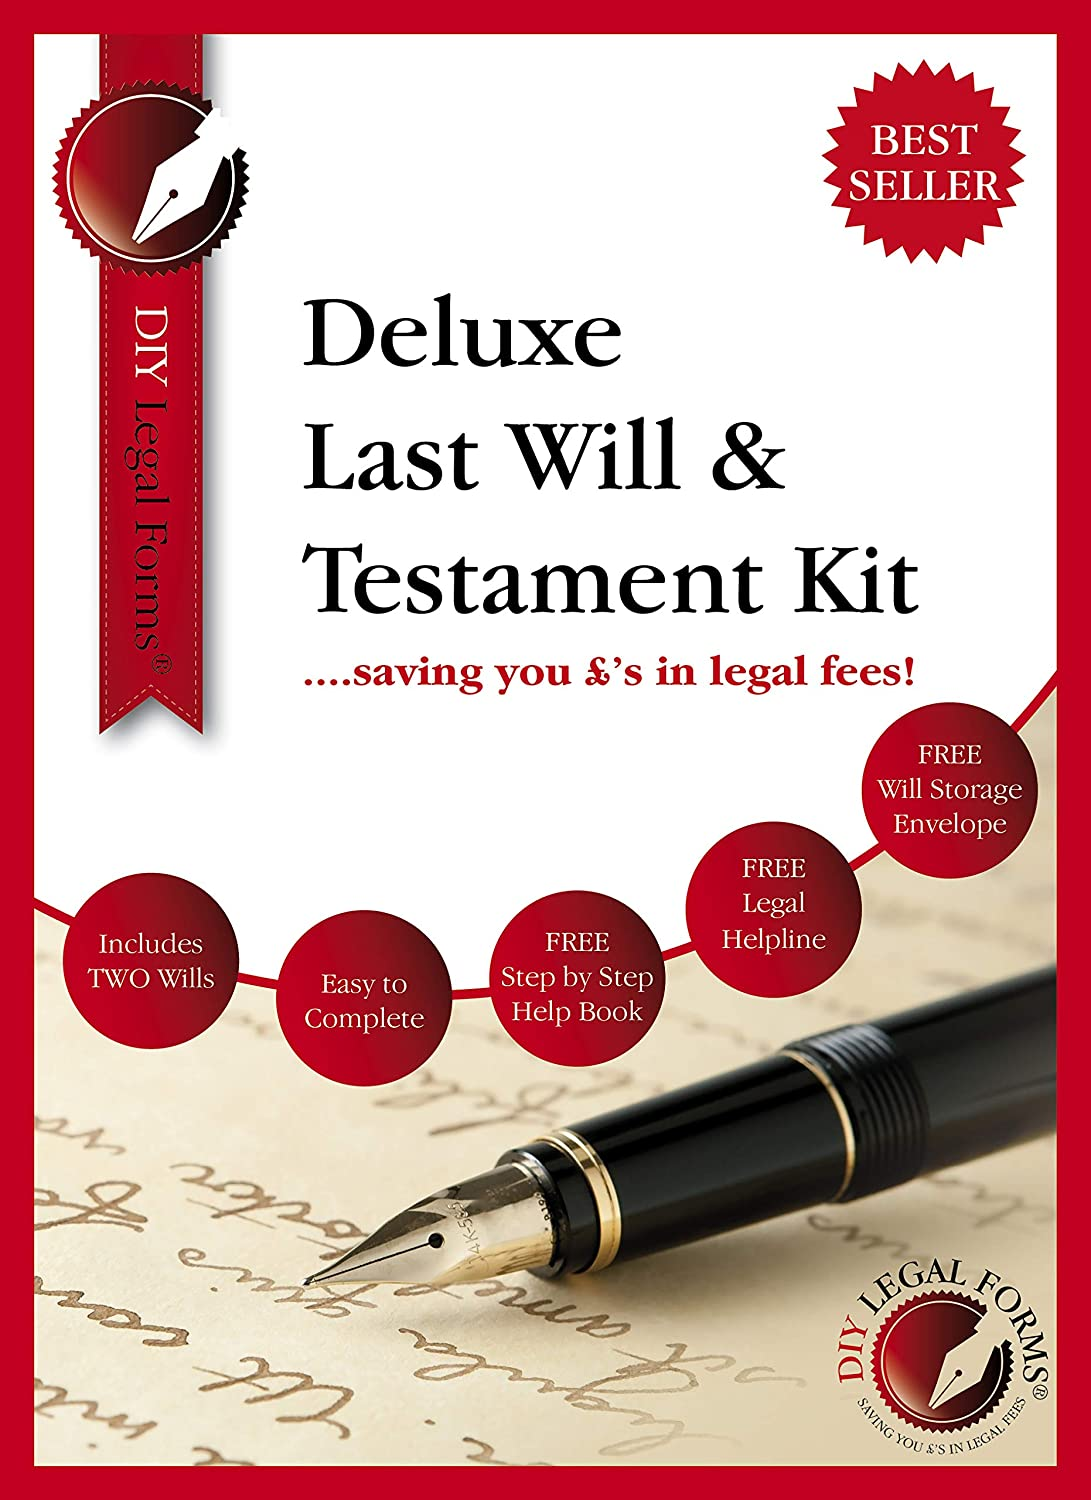 Last Will and Testament Kit 2019-20 UK, DELUXE Edition, Suitable for up to  TWO people, brand new and sealed  Solicitor approved